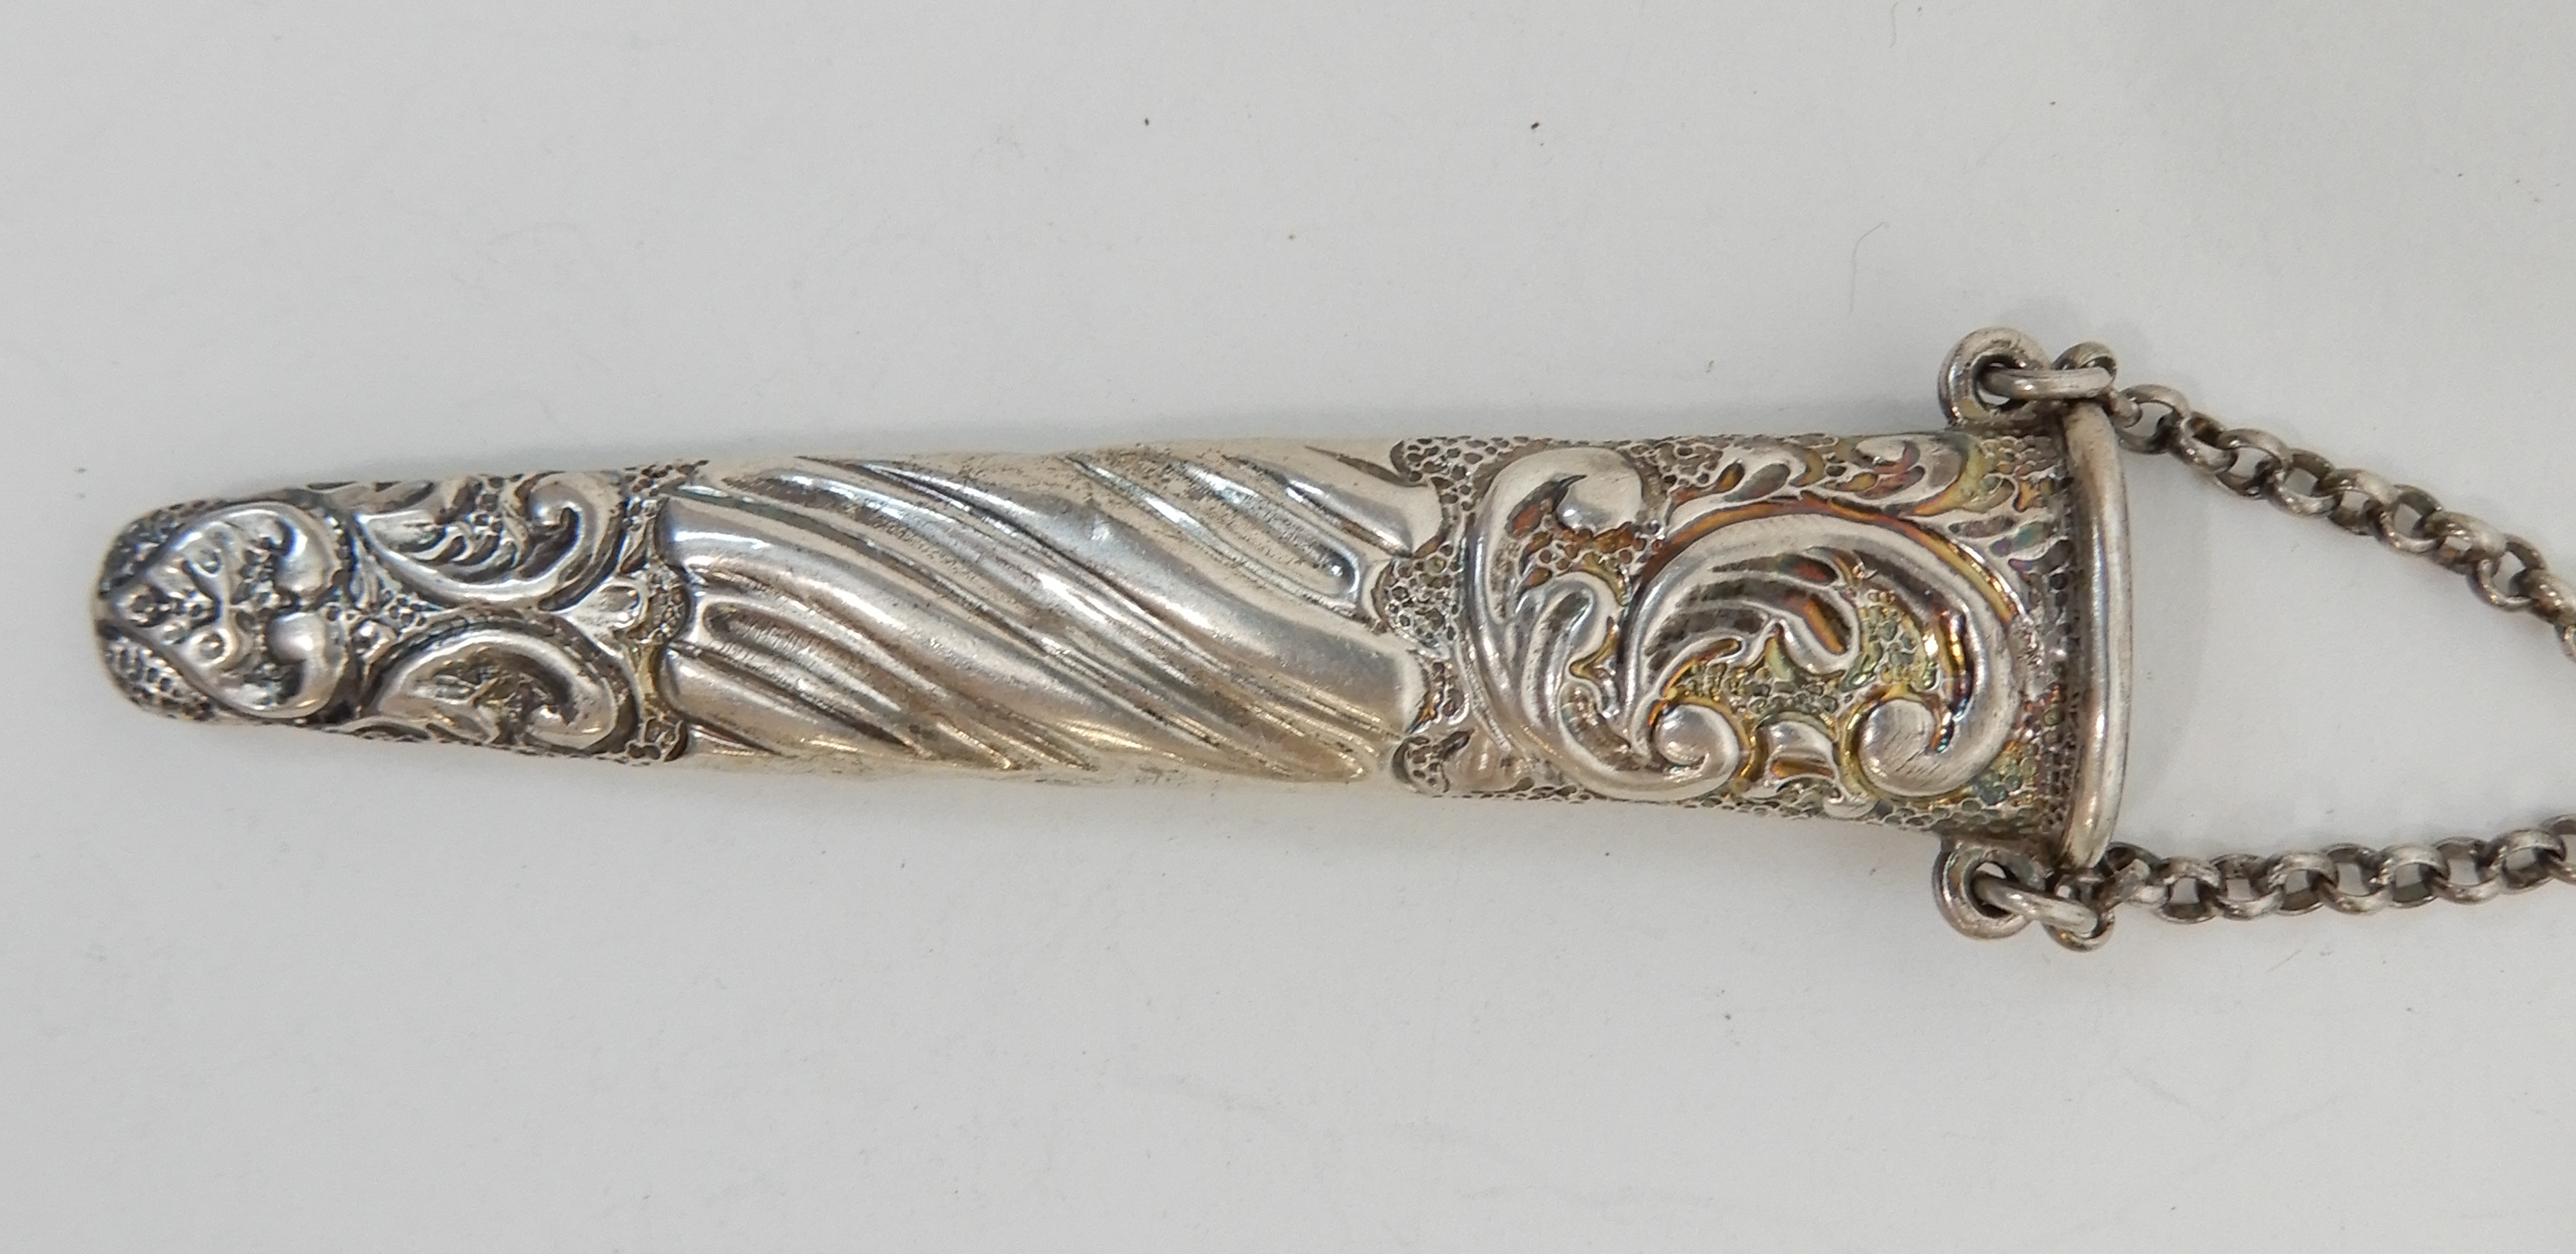 Lot 151 - A SILVER CHATELAINE no hallmark but maker's mark for Julius Rosenthal and Samuel Jacob, of classic